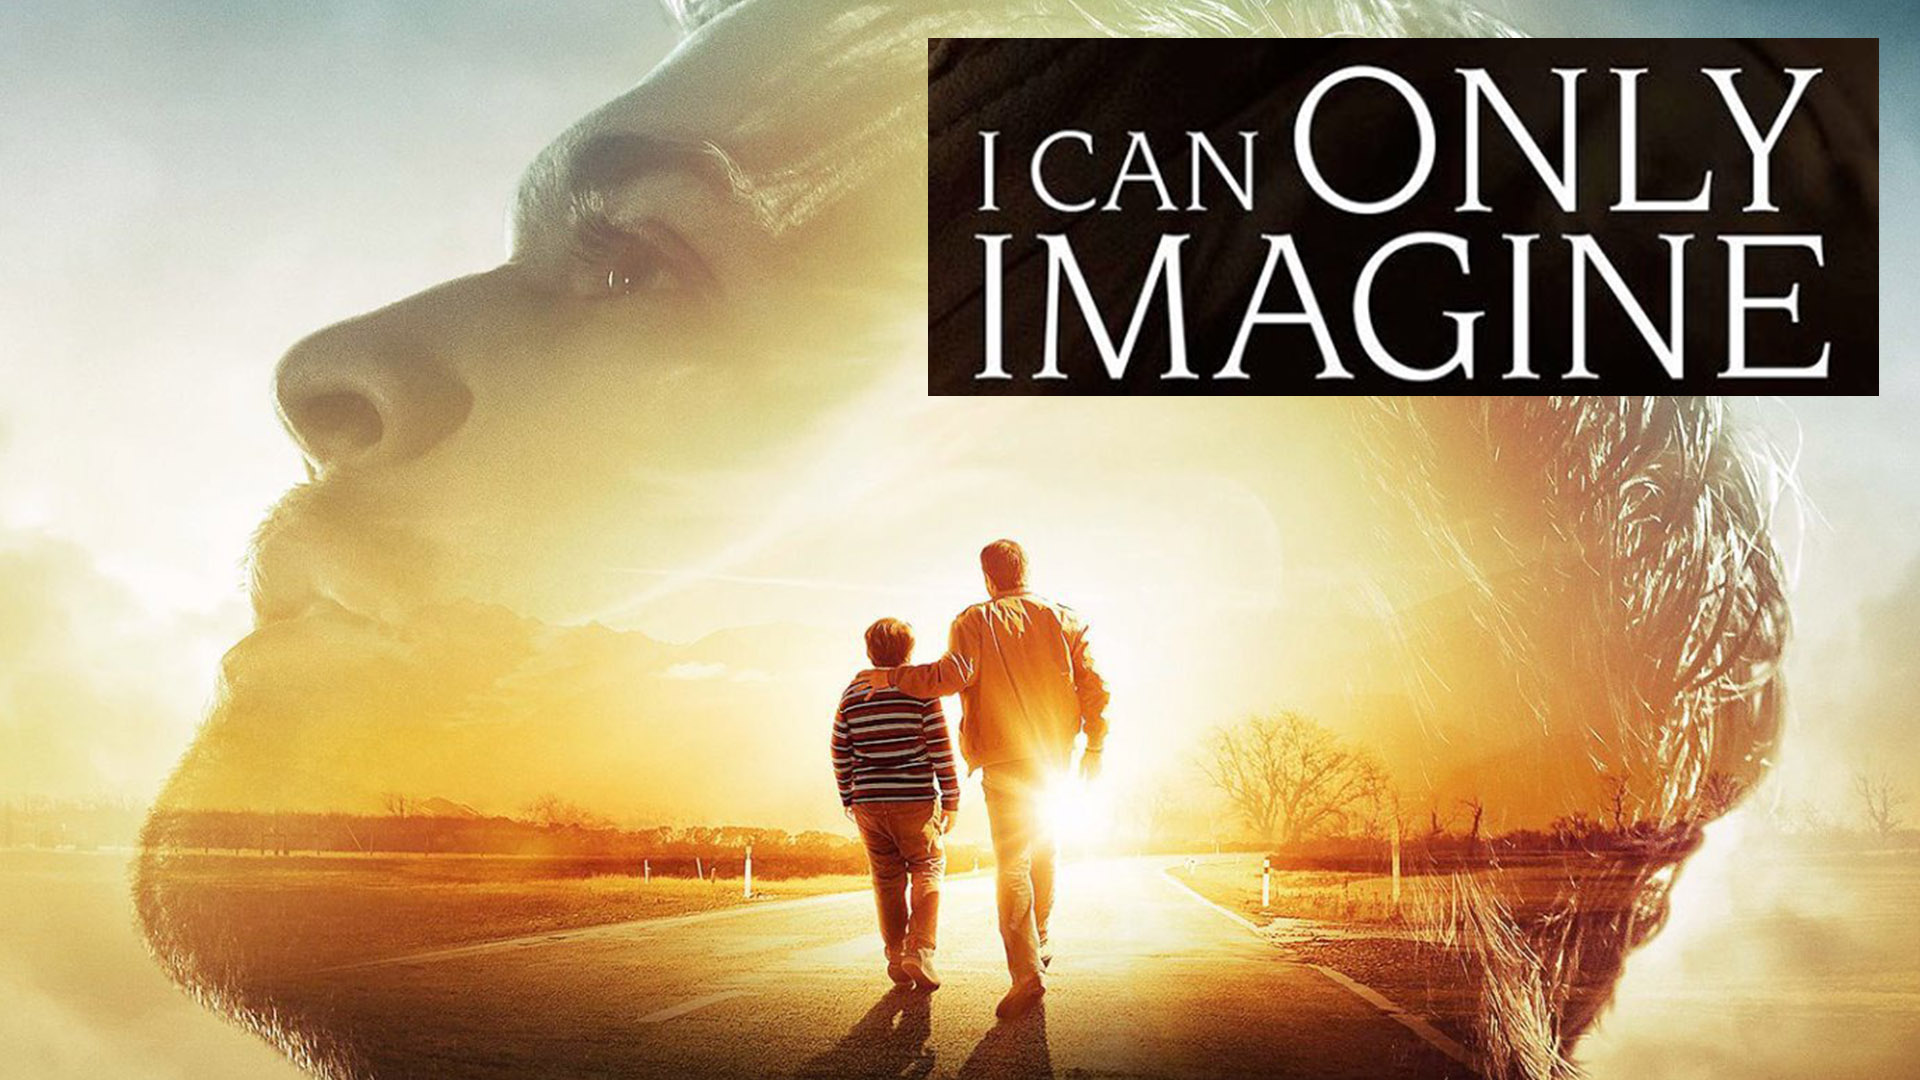 I Can Only Imagine (2018)